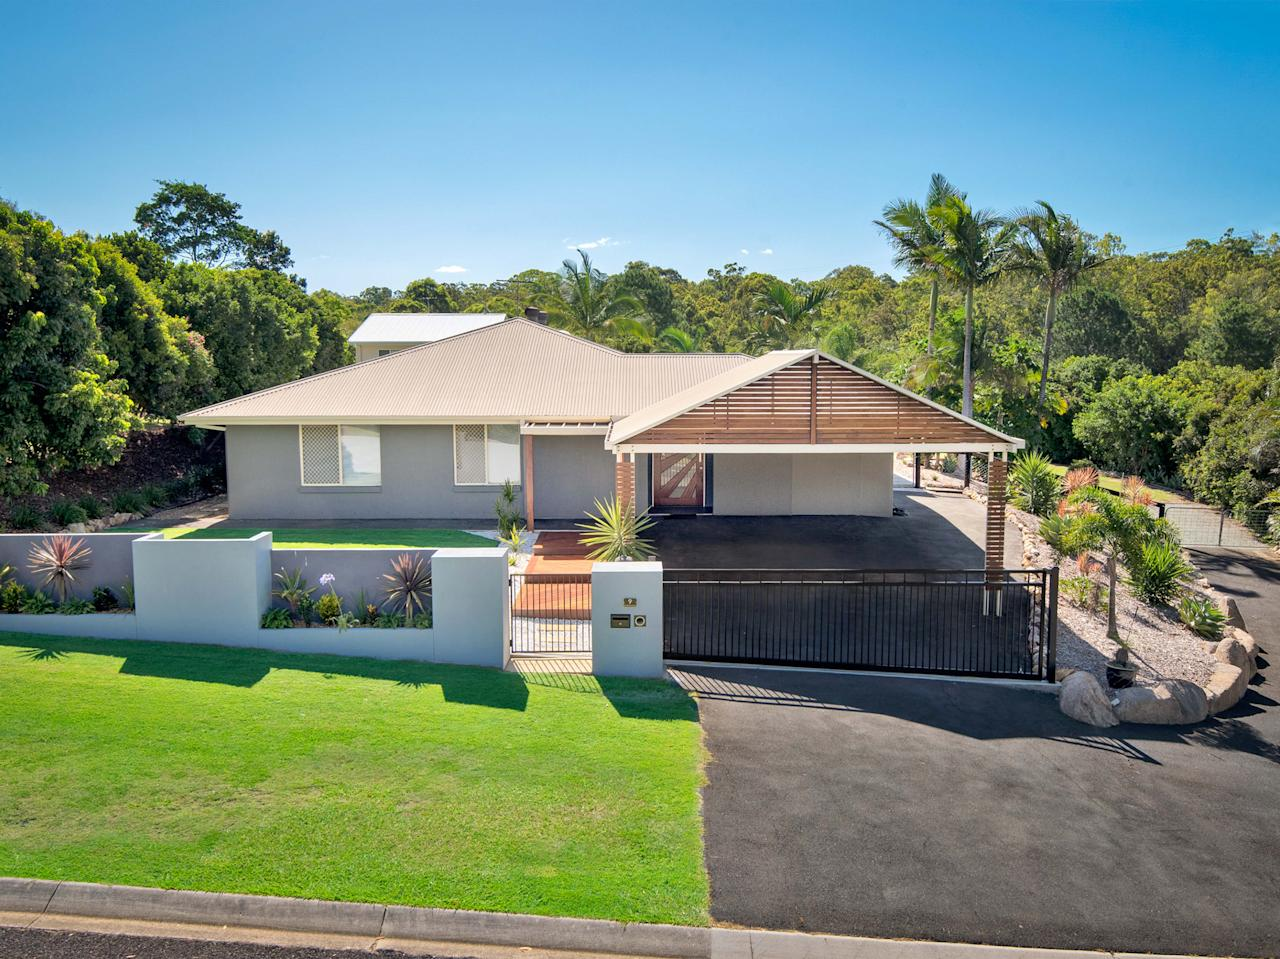 <p>The five-bed home also boasts a cinema, putting green and a hair salon. Vendor Craig Gormley snapped up the water flume from Gumtree in 2016 after it was sold off by a nearby family attraction called The Woolshed. </p>